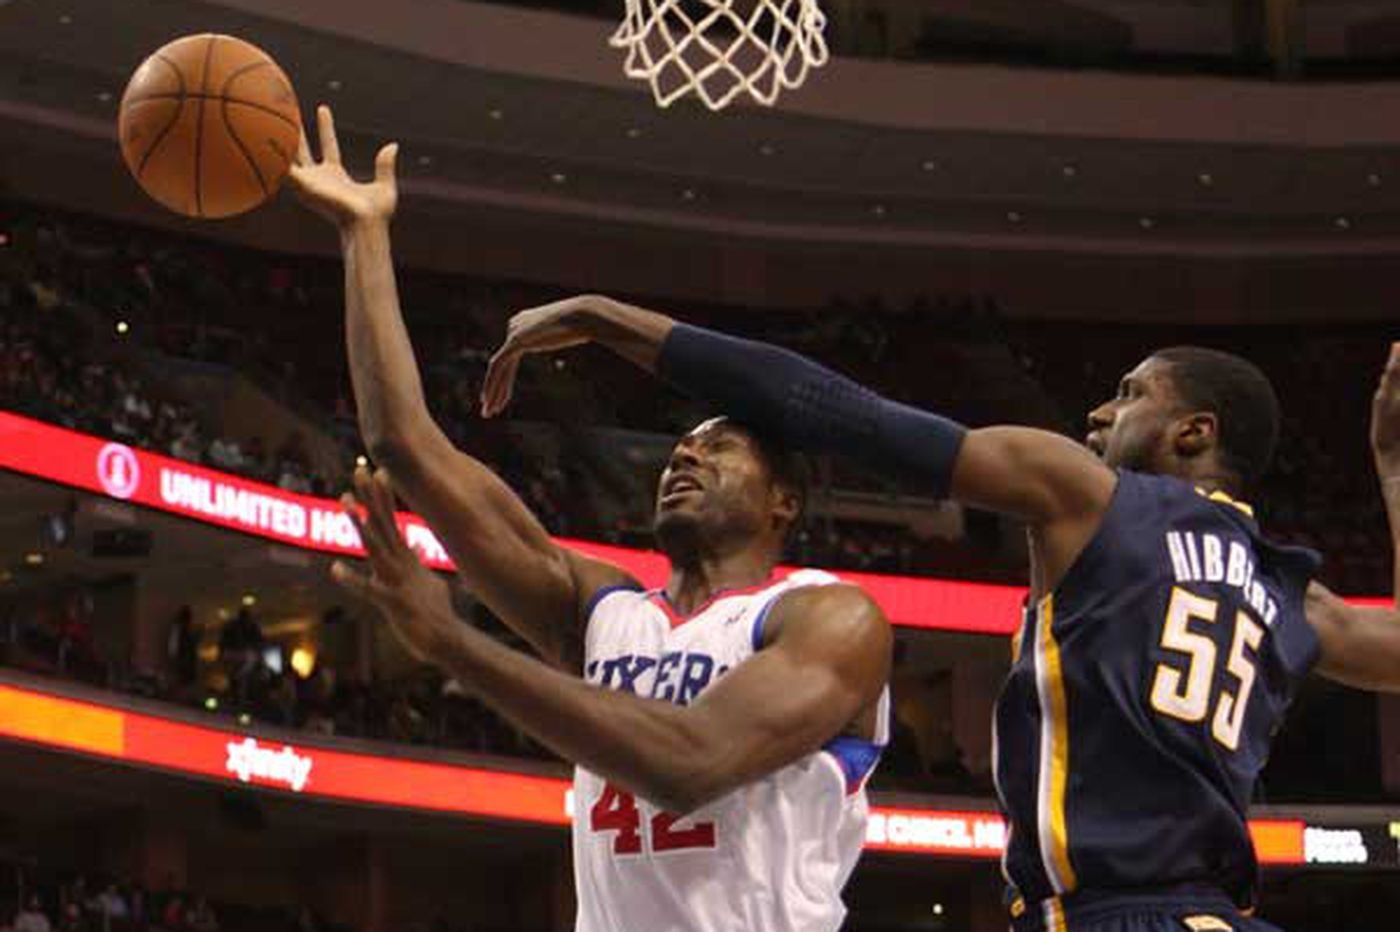 Sixers hire Roy Hibbert as a player development coach